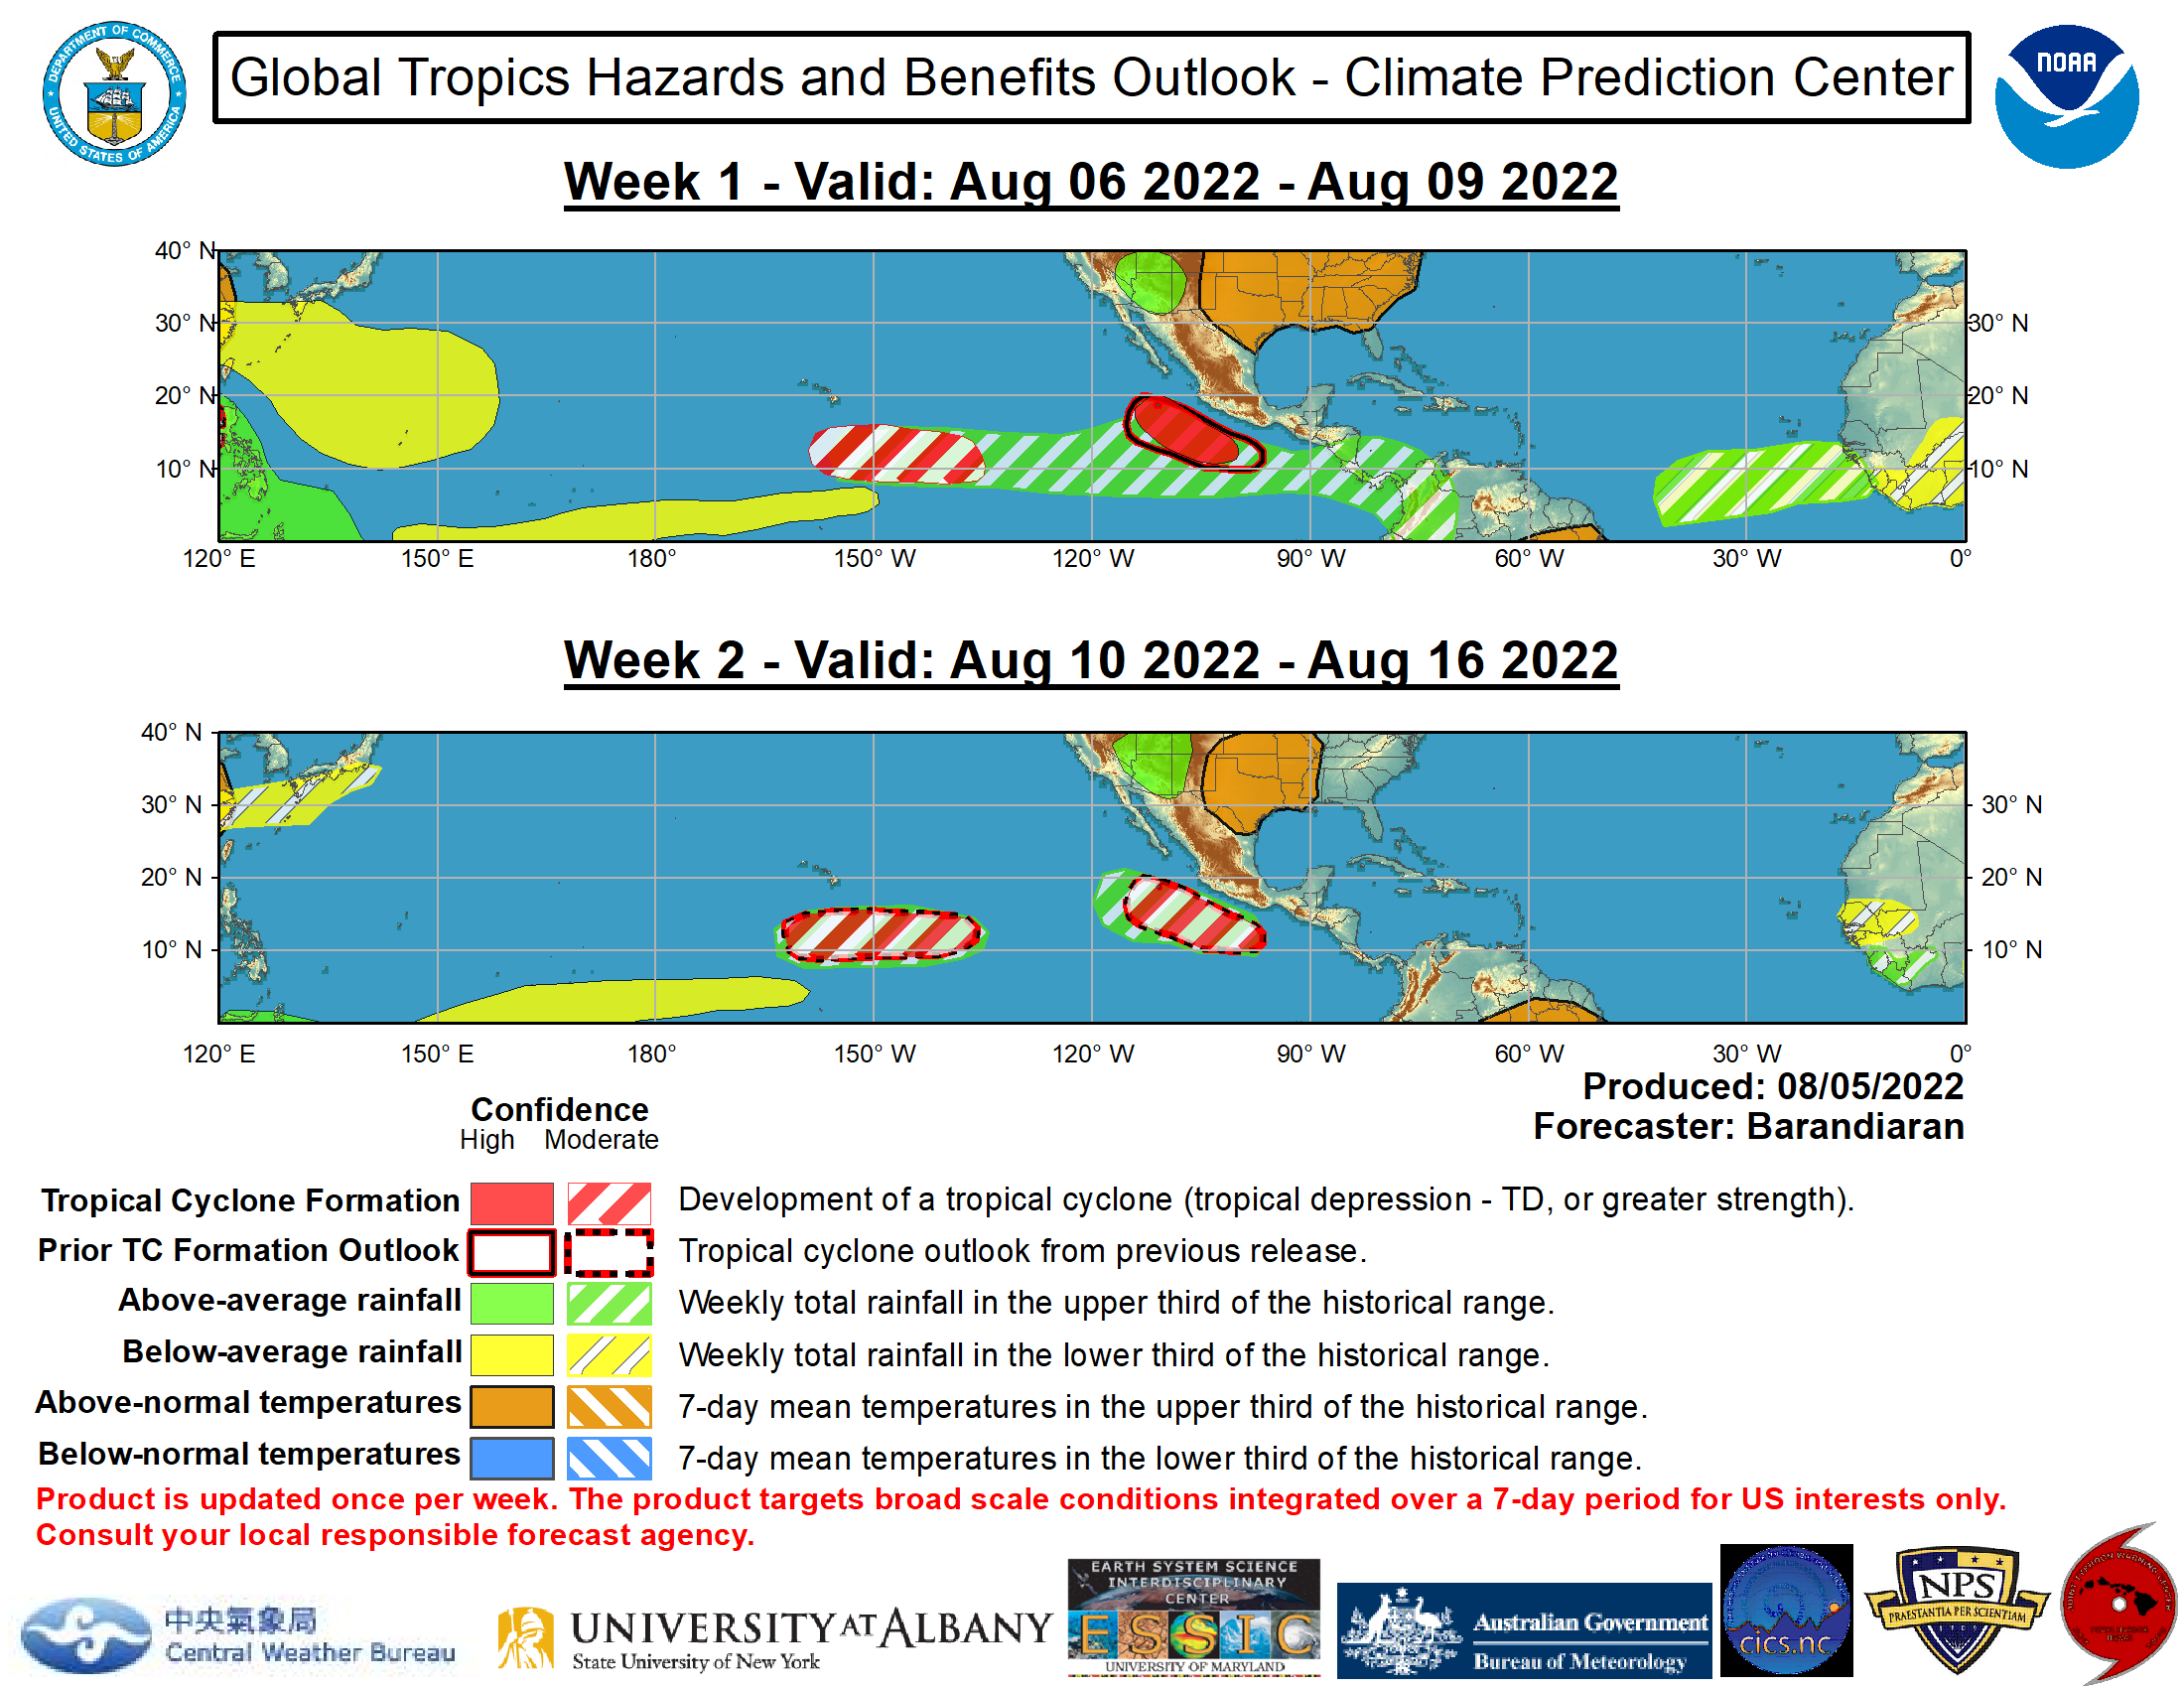 Global Tropics Outlook